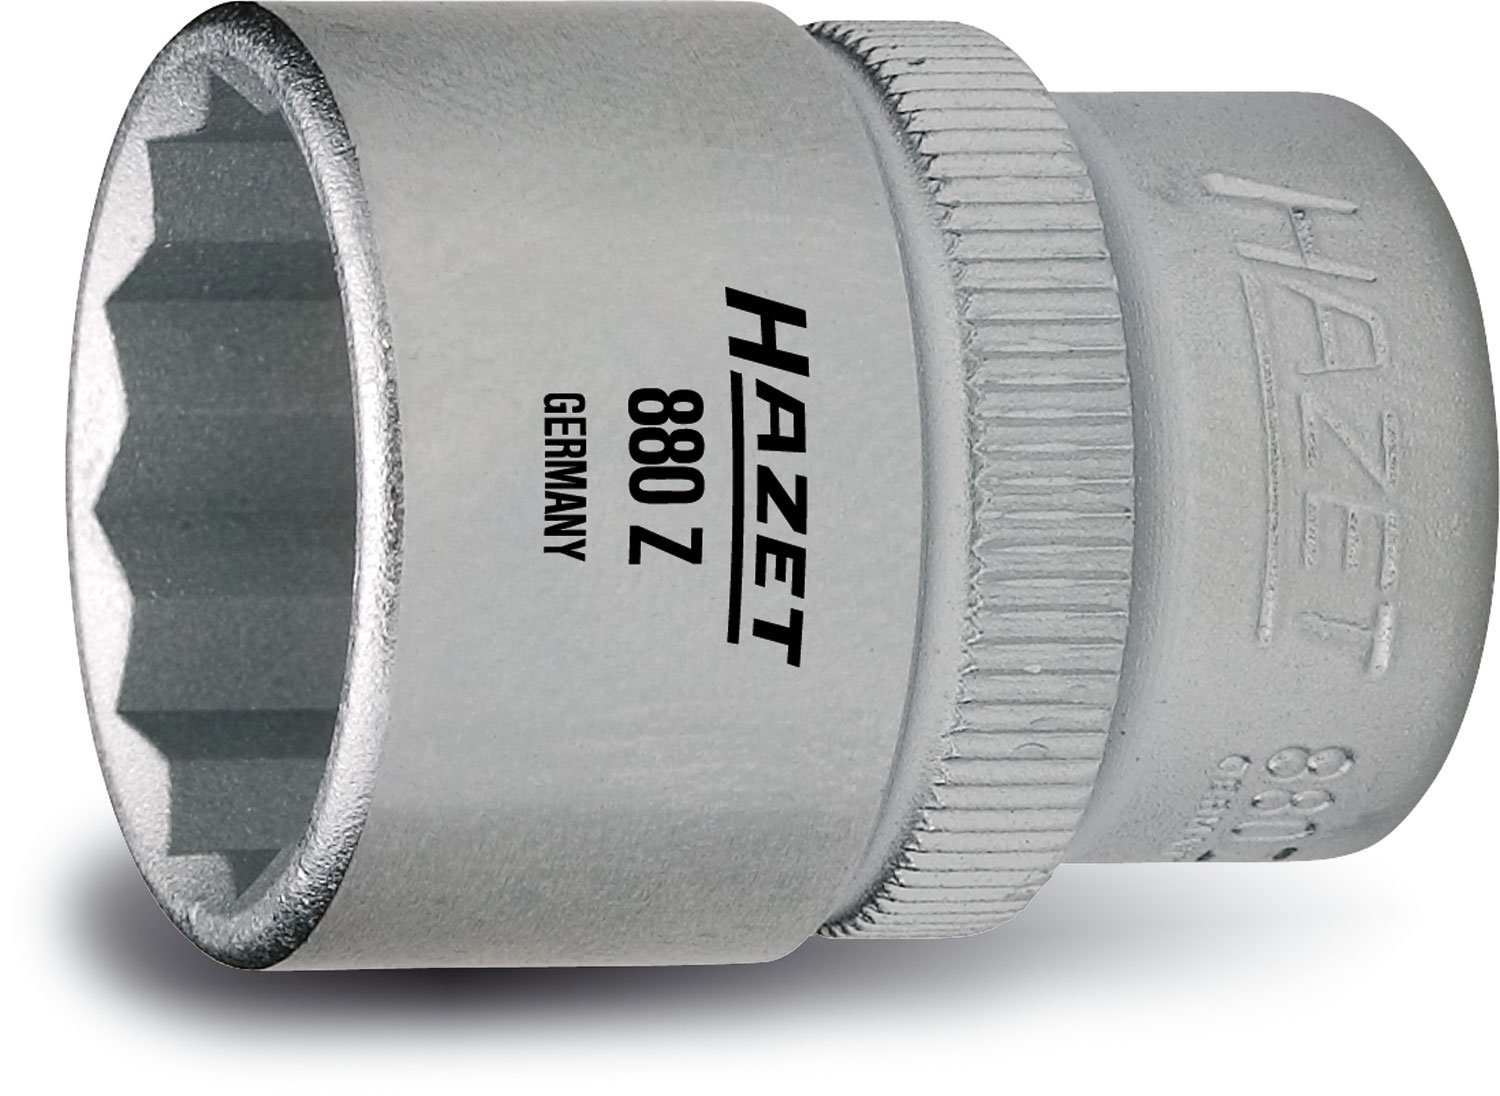 1 1//4-Inch IRWIN 1882408 Impact Performance Series 6-Point Deep Well Socket Bit 1//2-Inch Square Drive